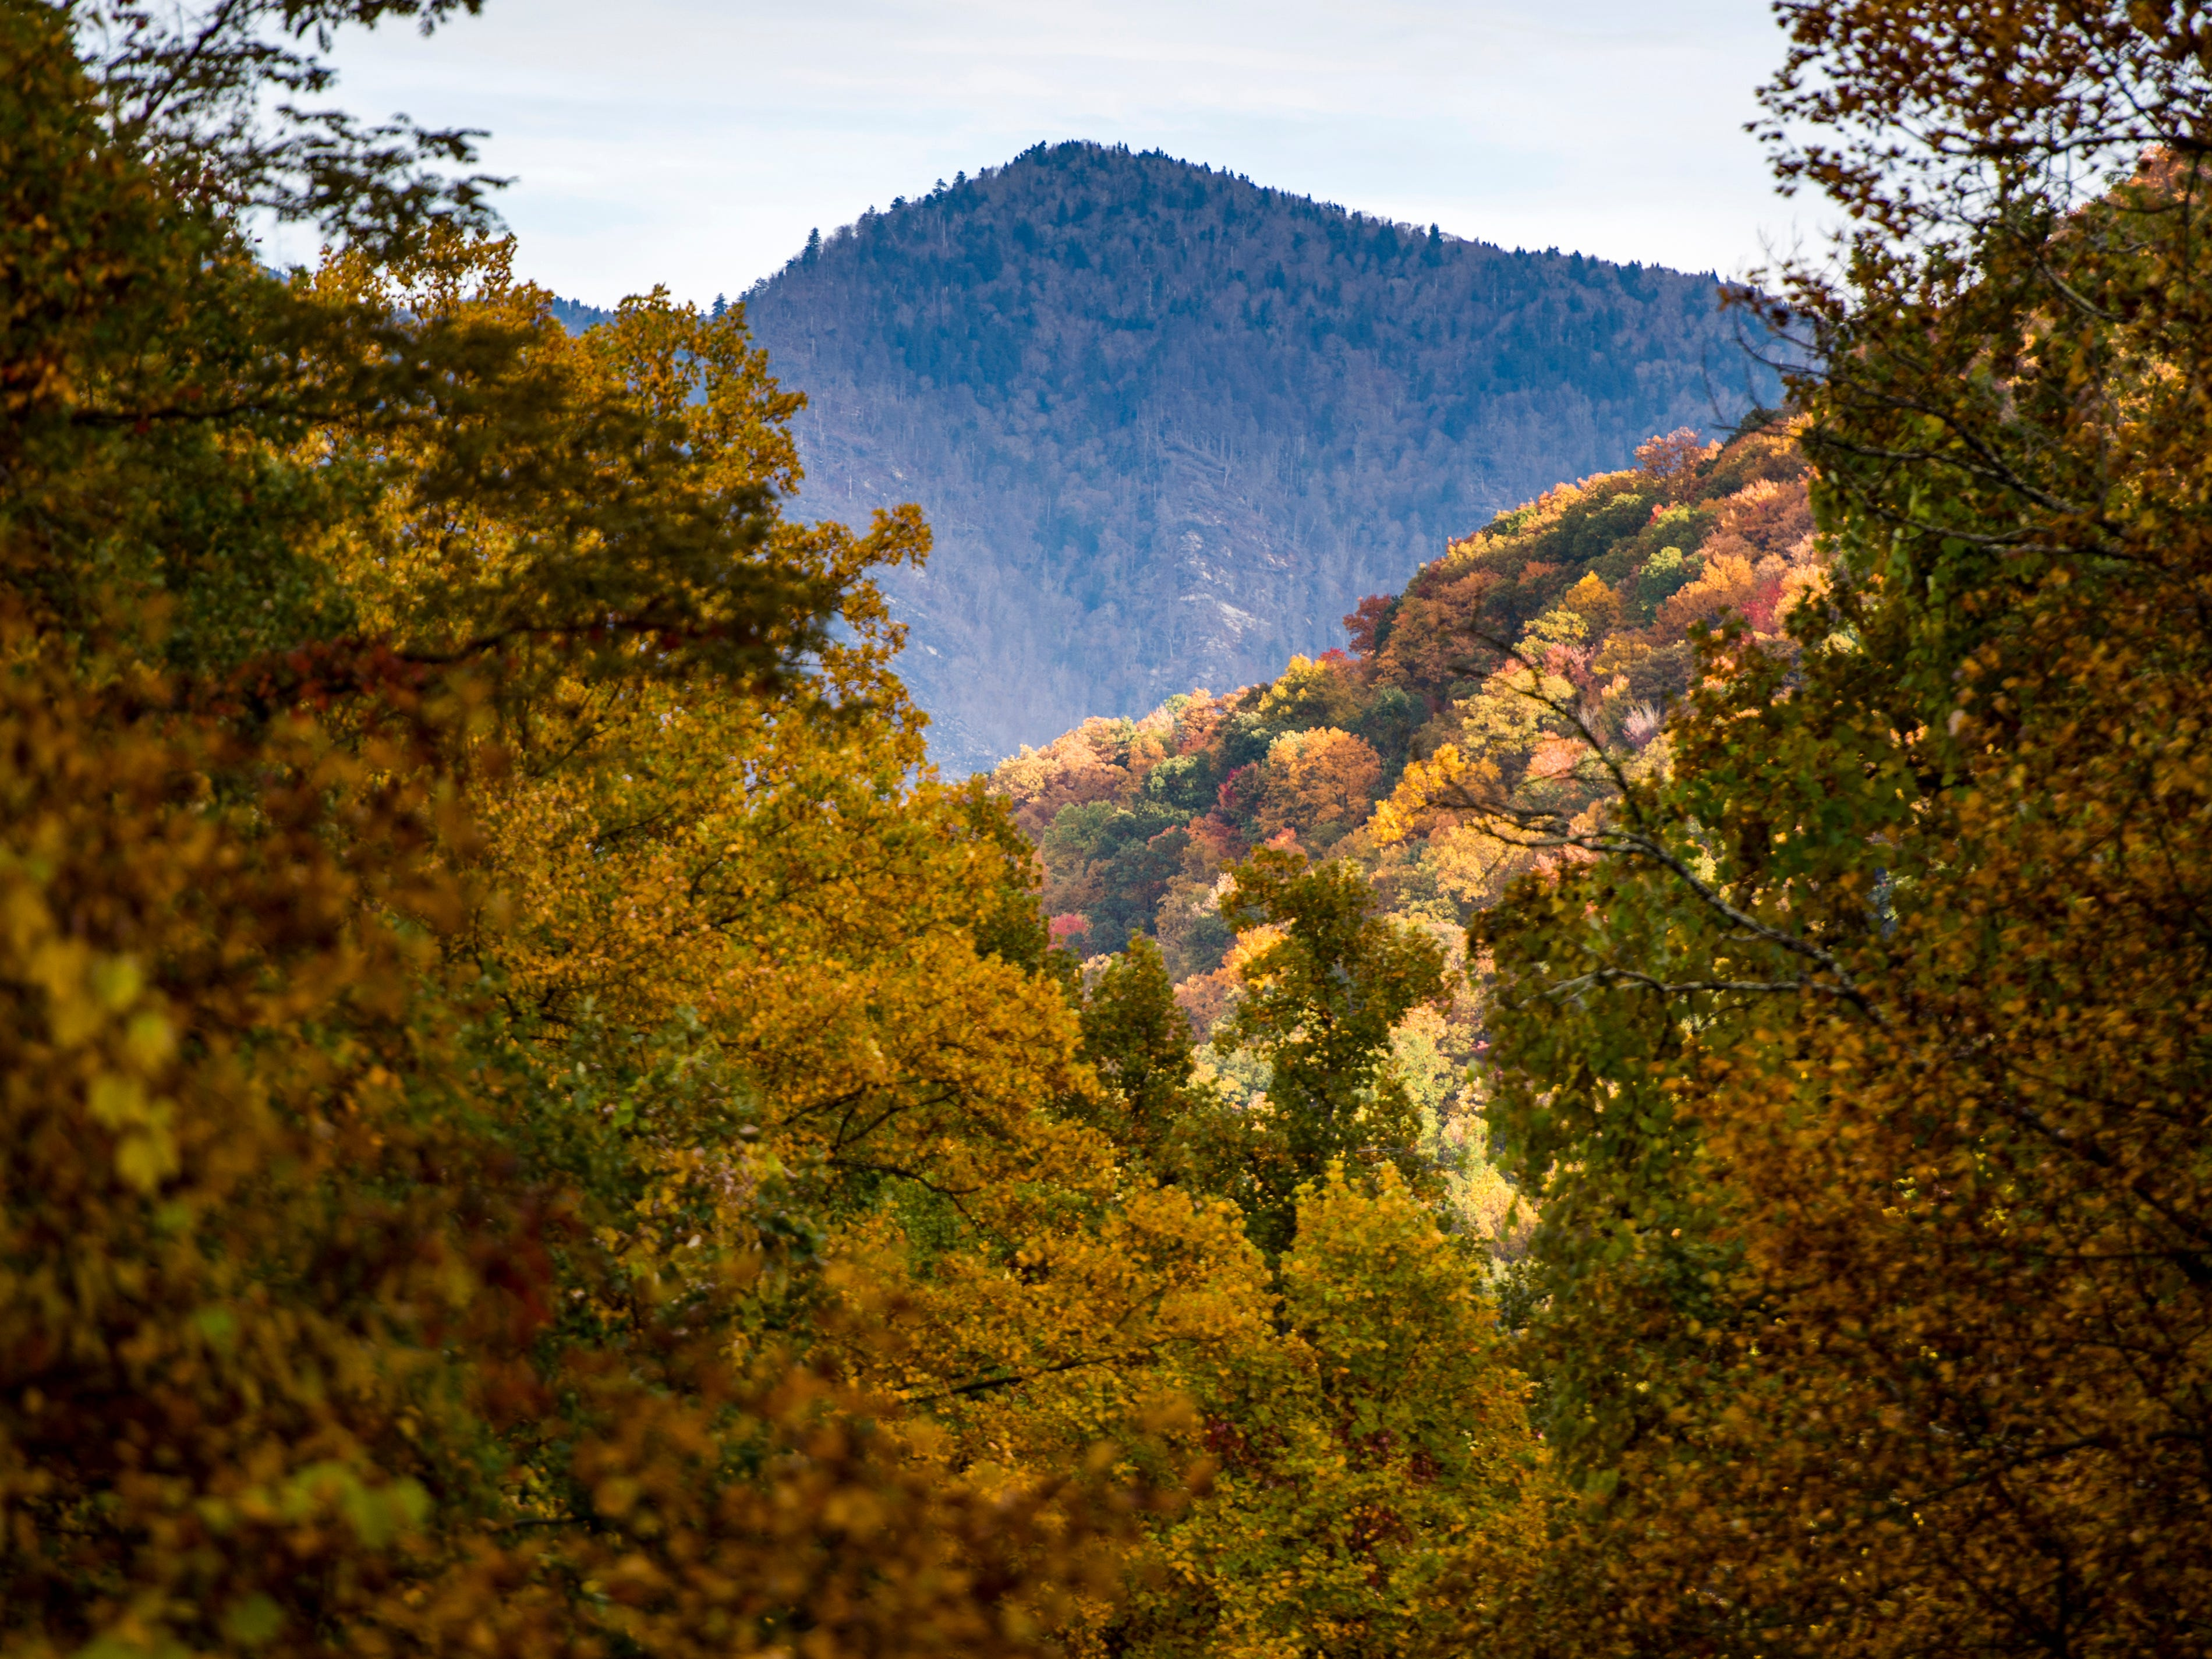 Fall foliage in the Great Smoky Mountains National Park on Sunday, November 4, 2018.